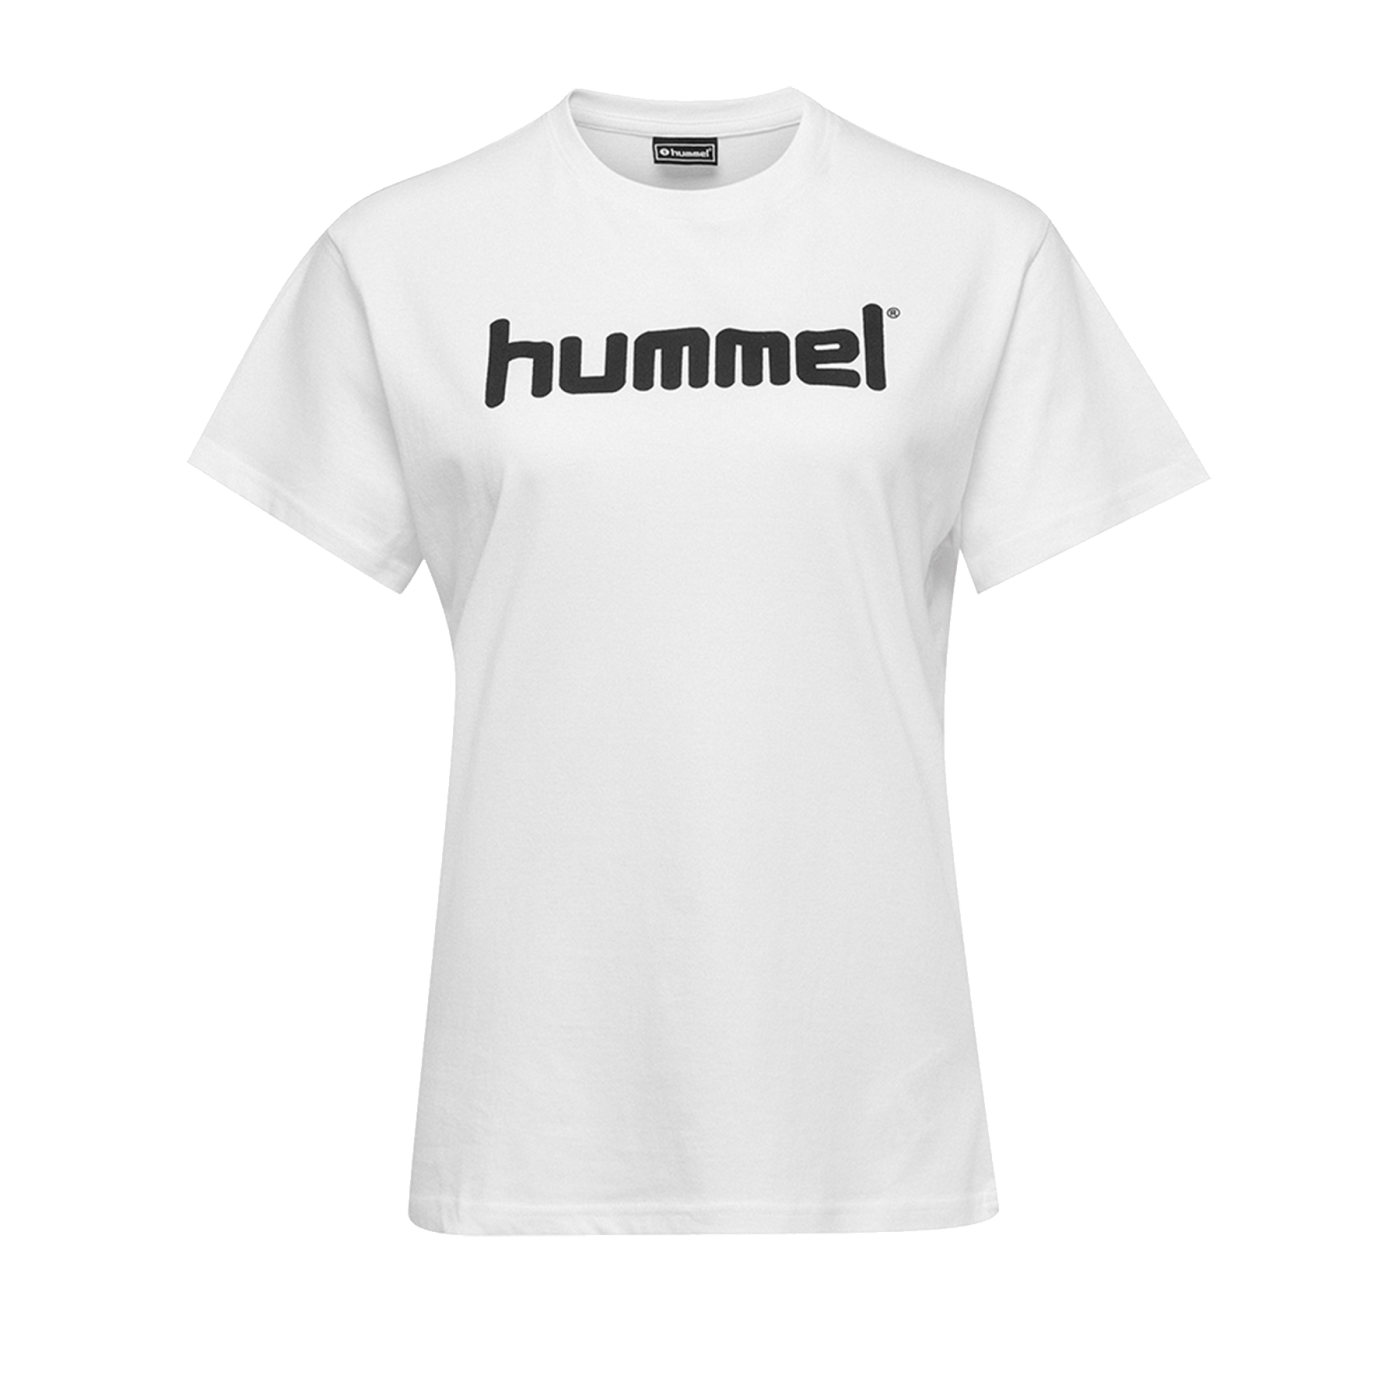 Hummel Cotton T-Shirt Logo Damen Weiss F9001 - Weiss